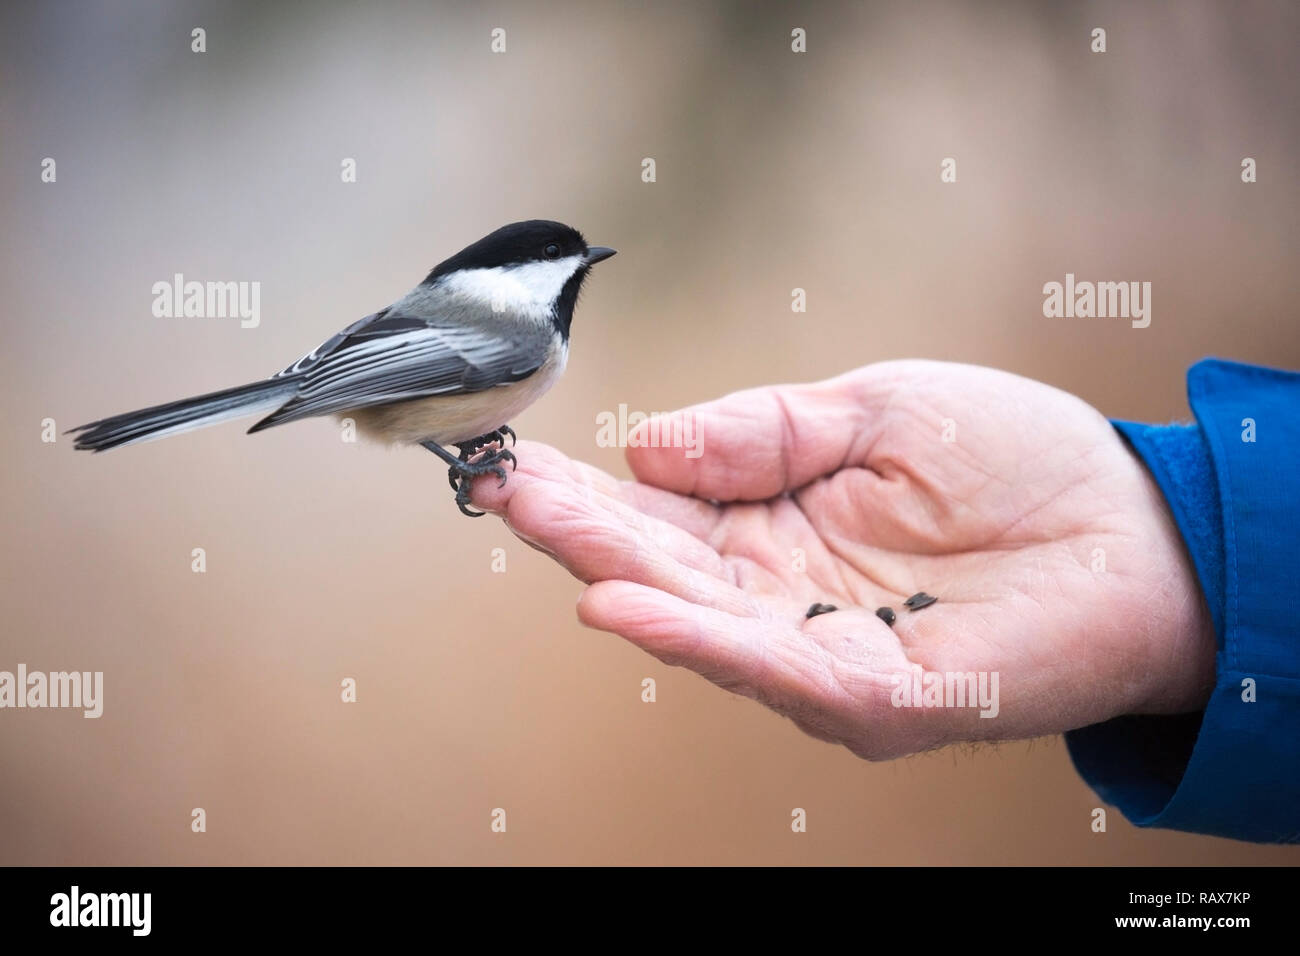 Black-capped chickadee (Poecile atricapillus) perched on man's hand with sunflower seeds - Stock Image